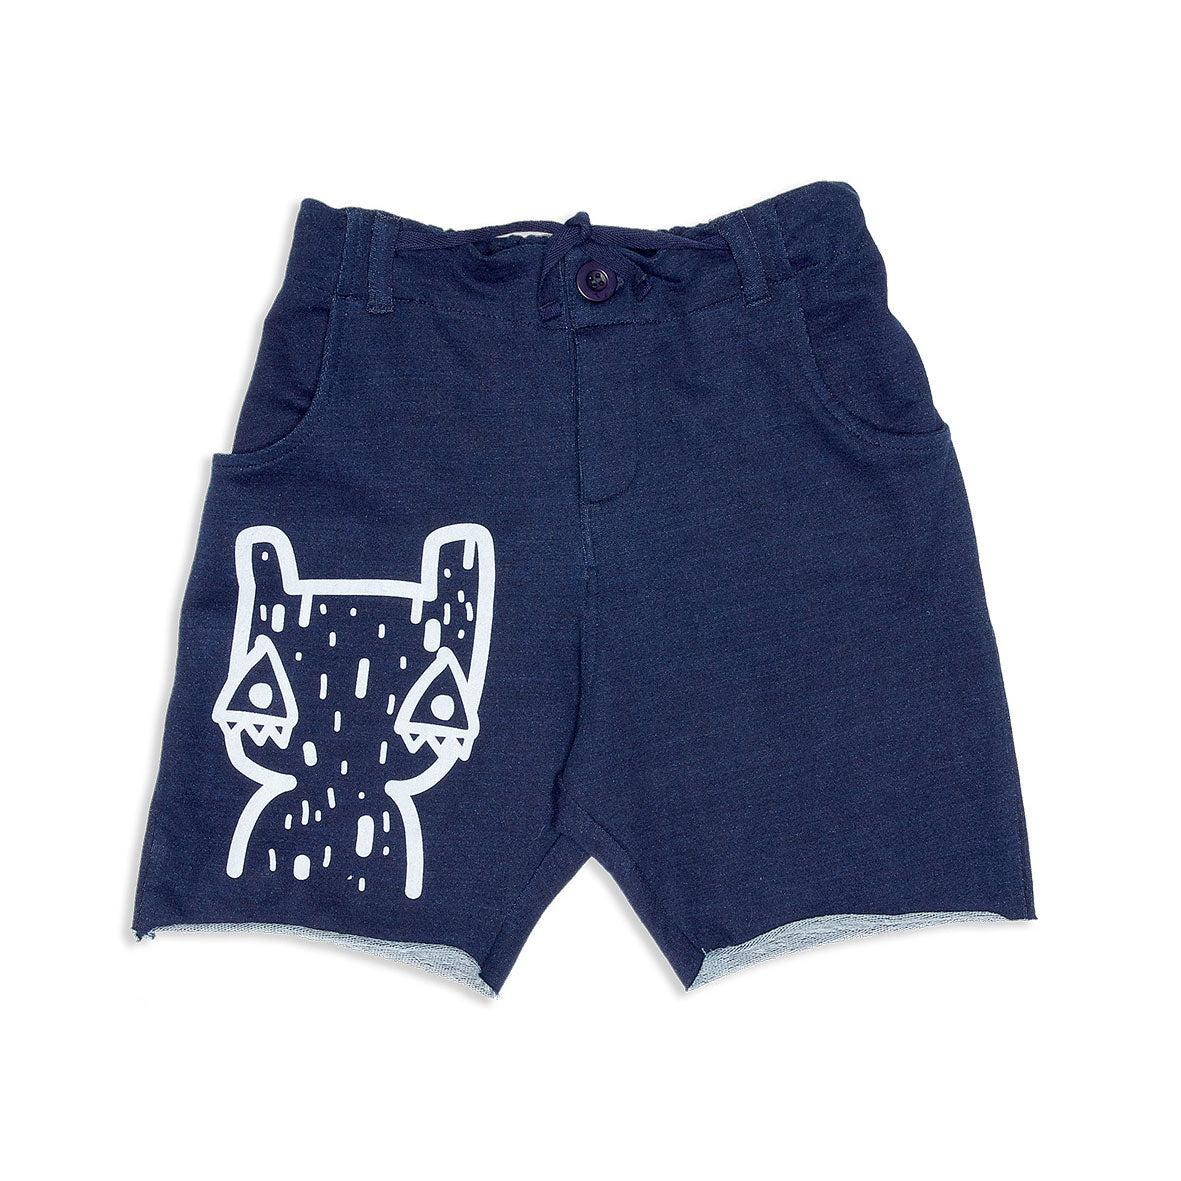 Born this way shorts